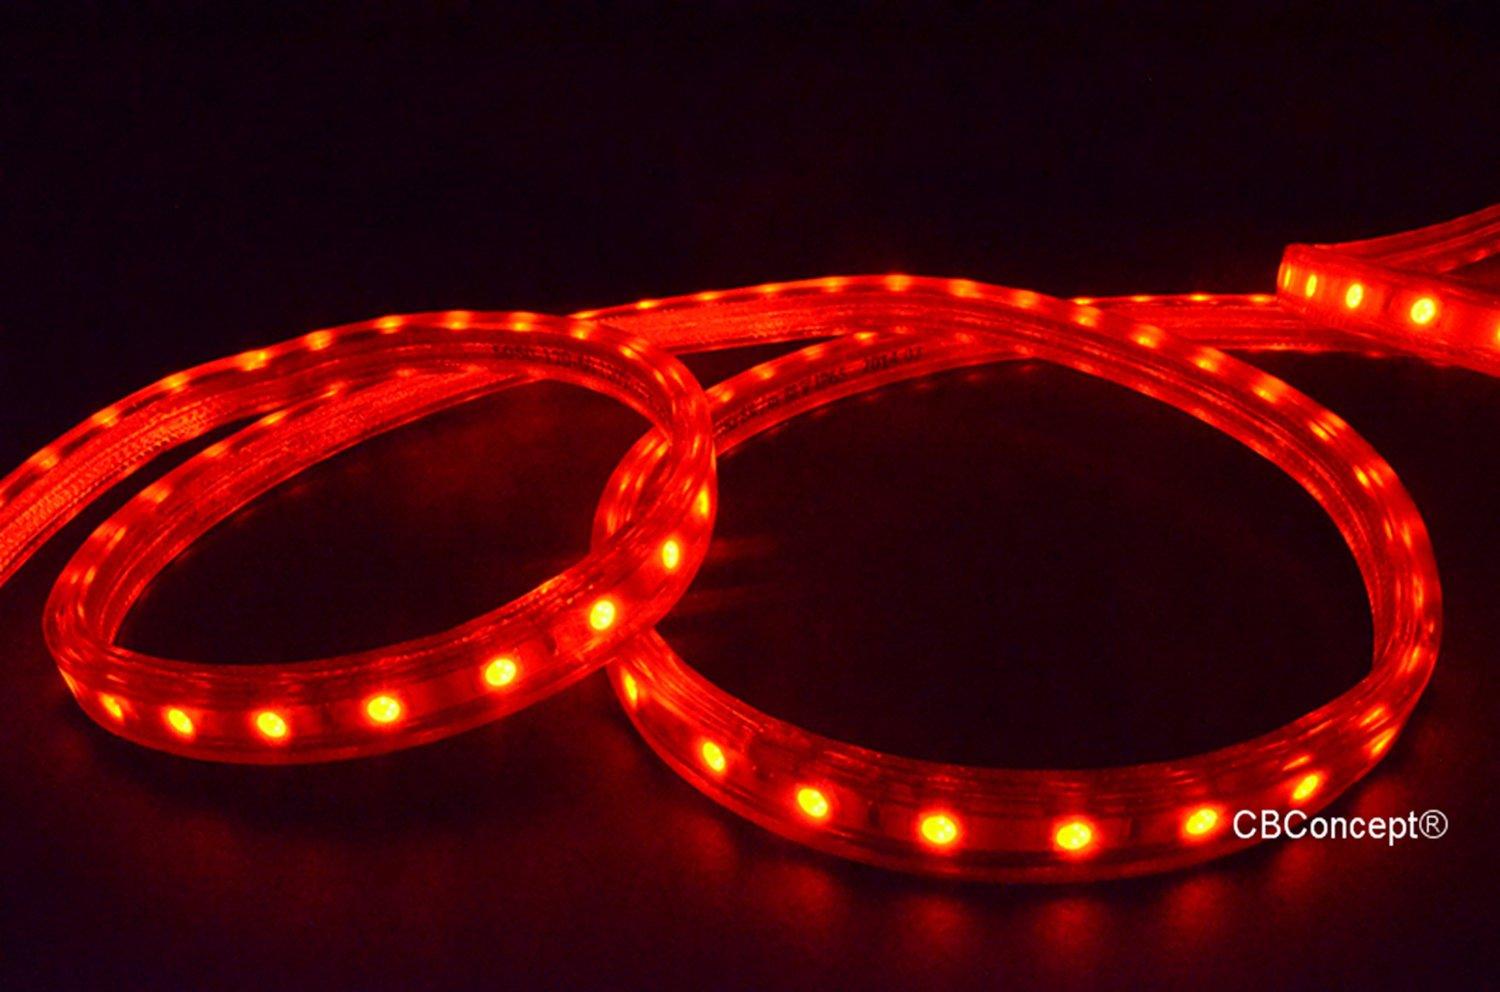 CBConcept® UL Listed, 18 Feet, Super Bright 5400 Lumen, RED, Dimmable, 110-120V AC Flexible Flat LED Strip Rope Light, Waterproof IP65, Accessories Included, [Christmas Lighting, Indoor / Outdoor Rope Lighting, Ceiling Light, Kitchen Lighting] [Ready to use]